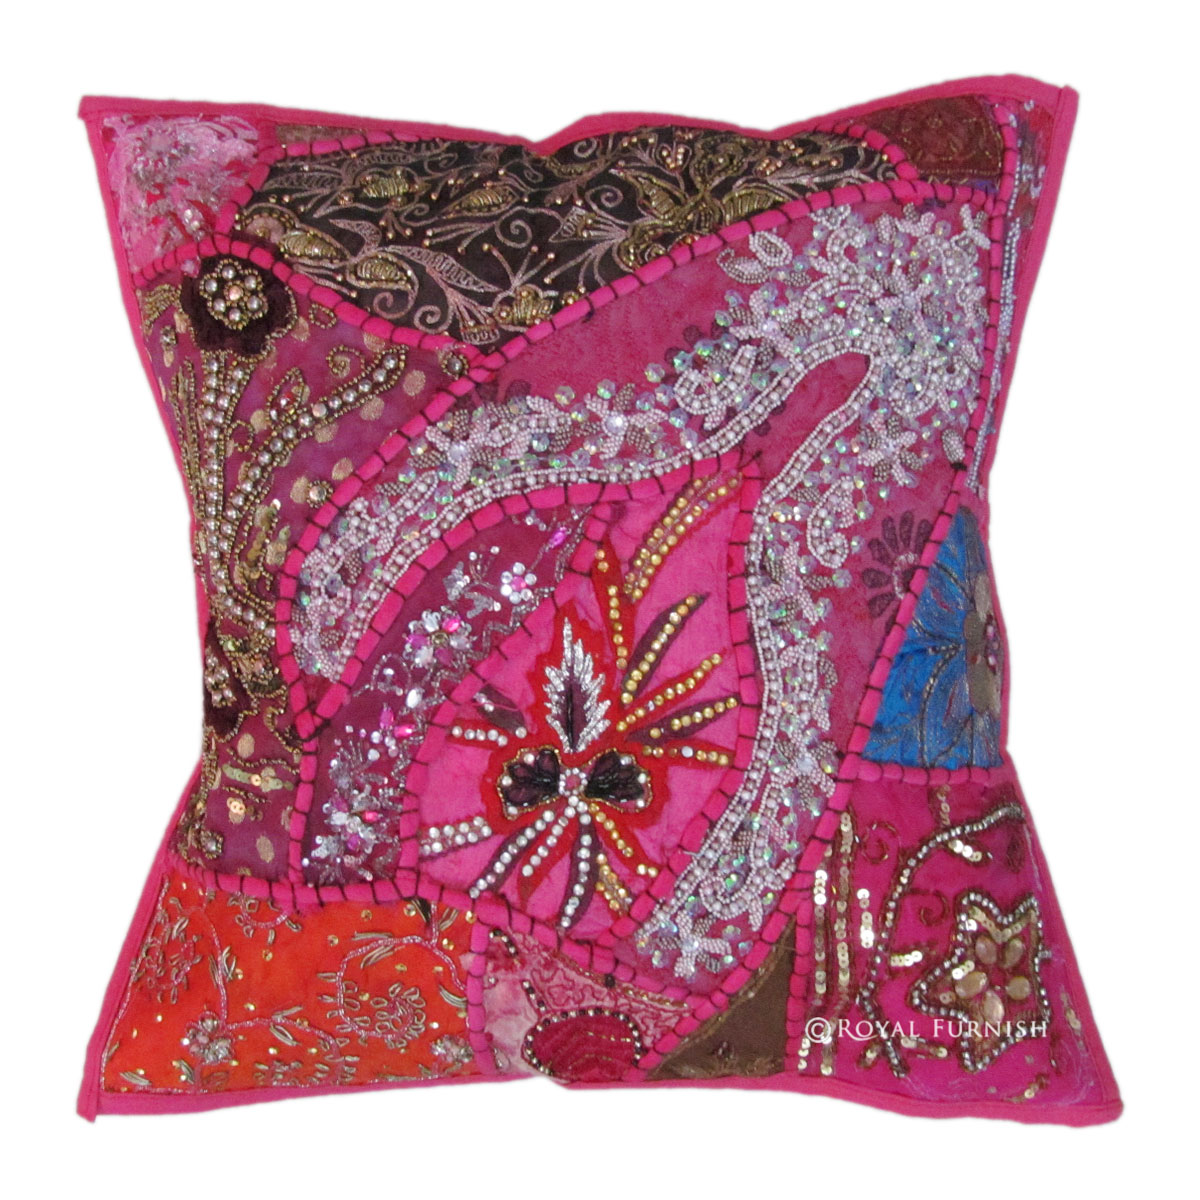 Decorative Pillows With Beads : Pink Antique Beaded Patchwork Indian Embroidered Throw Pillow Case Sham - RoyalFurnish.com